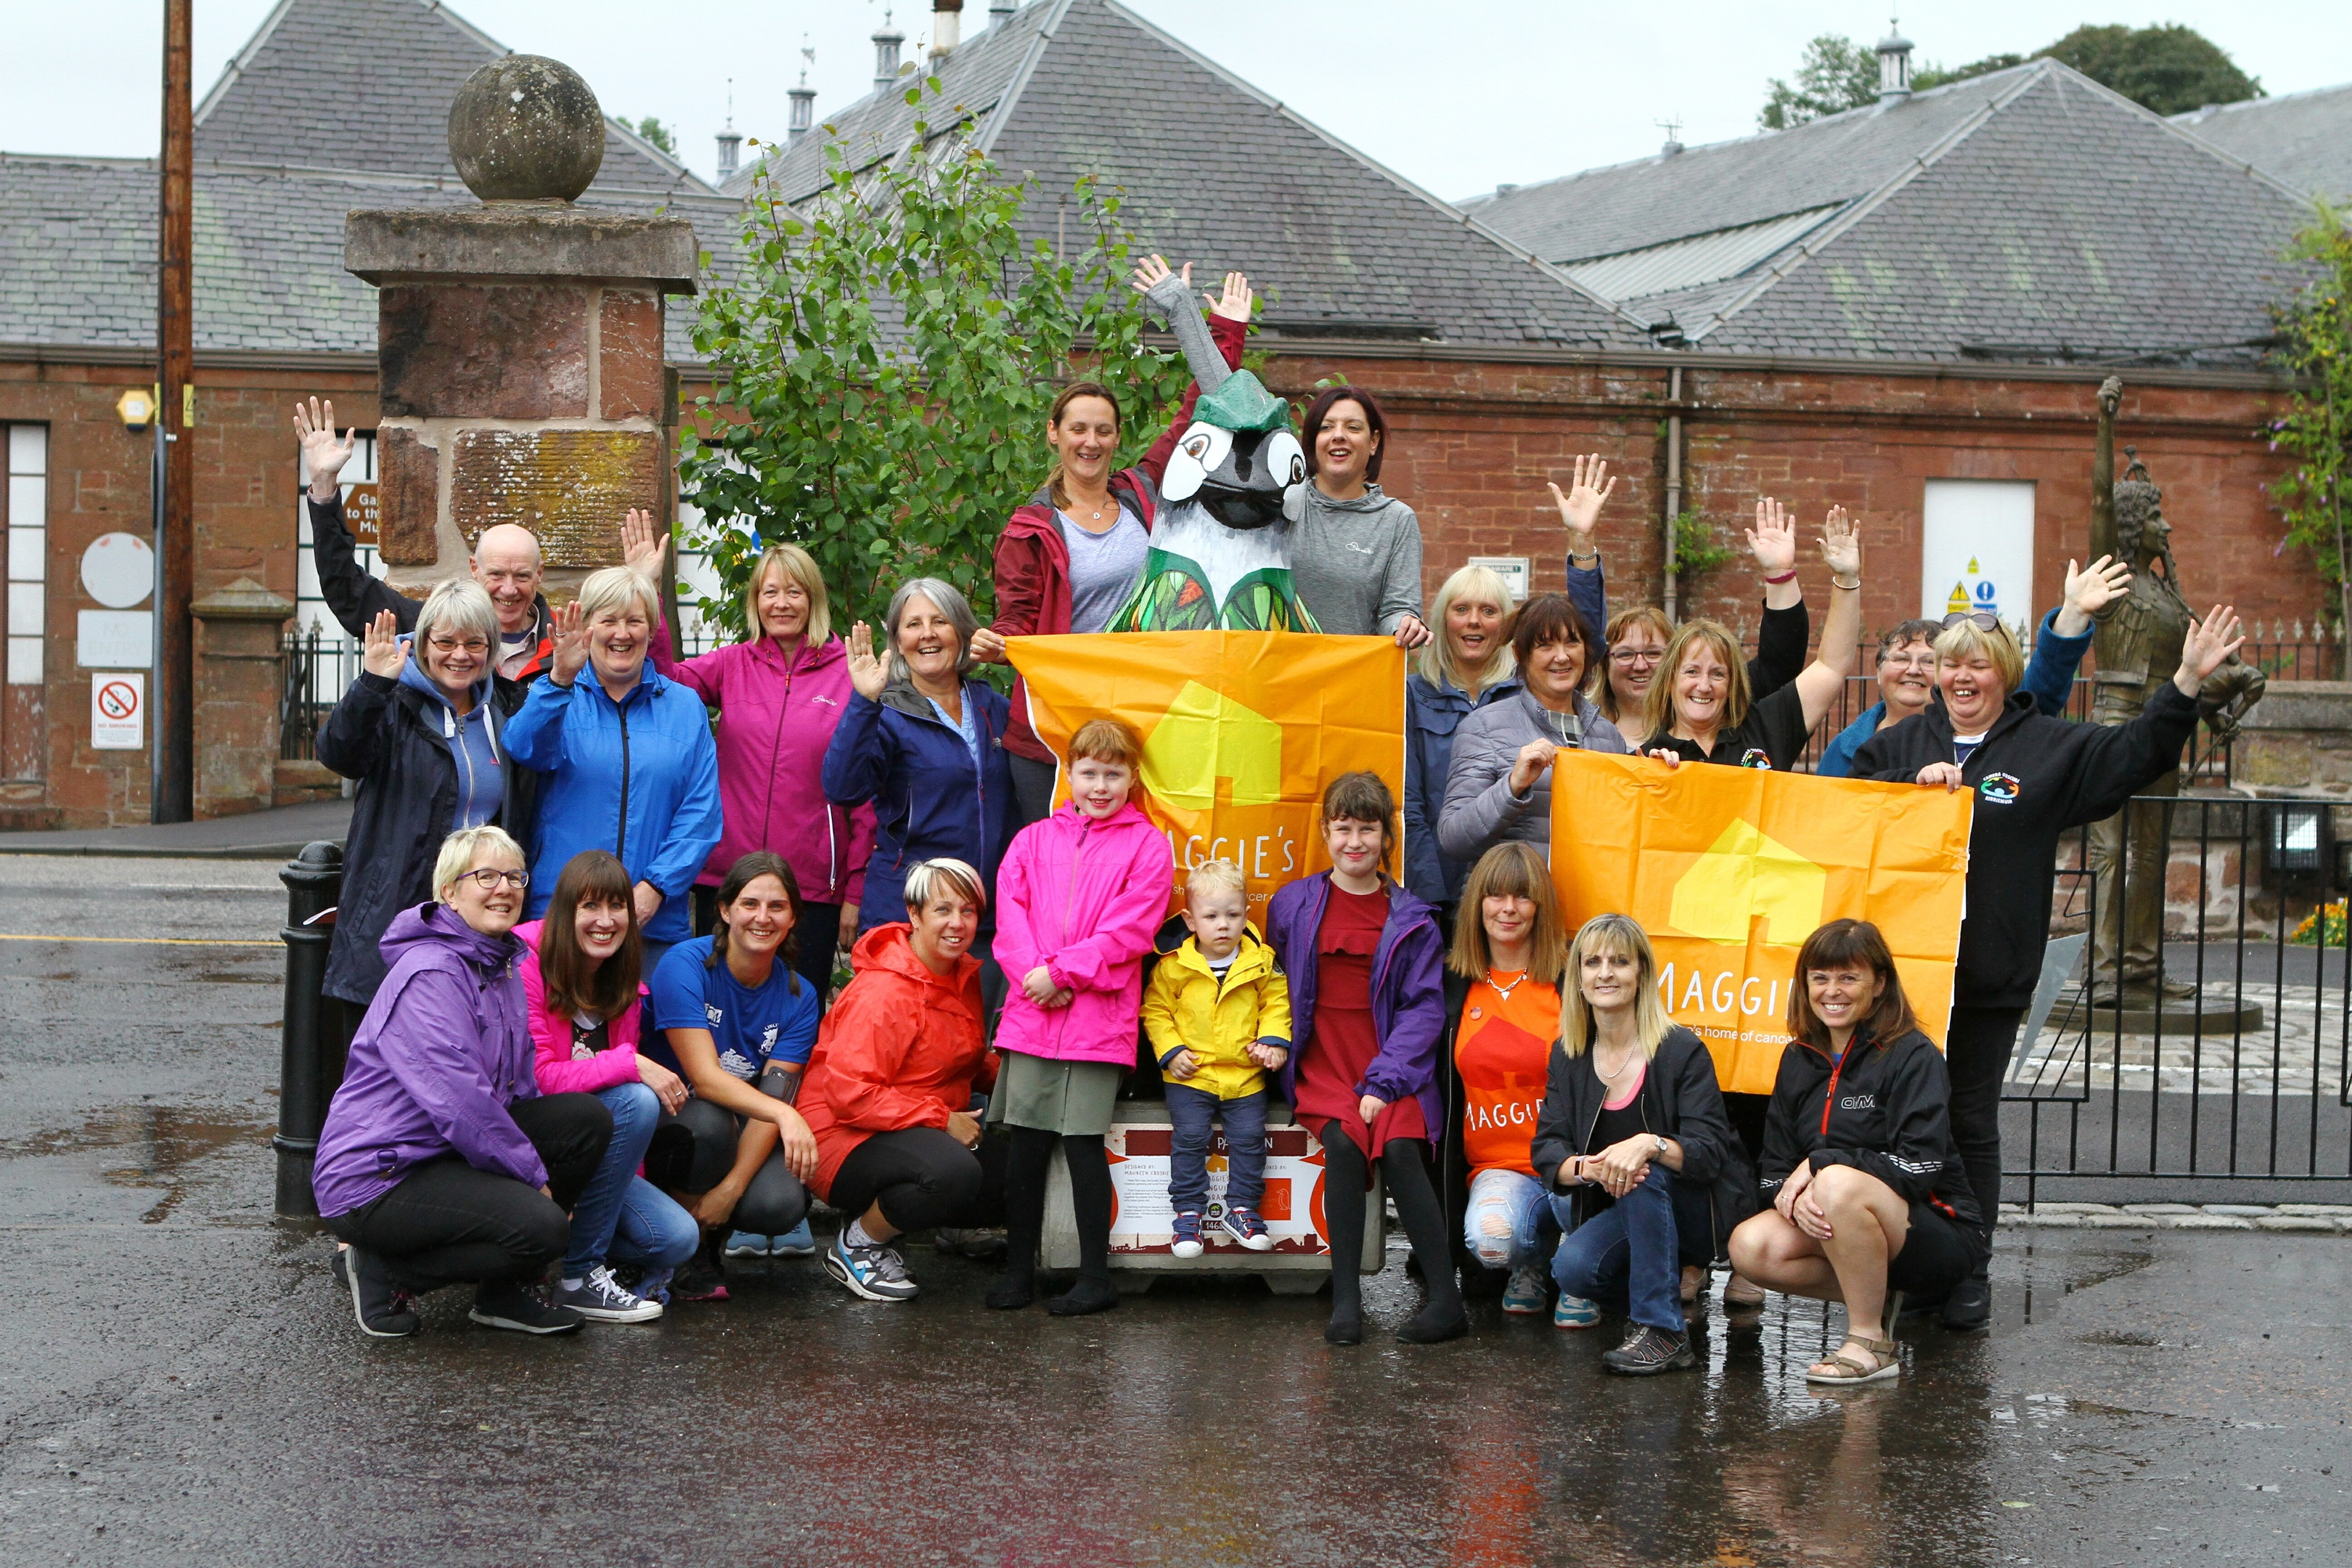 The group pictured at the start of the challenge.